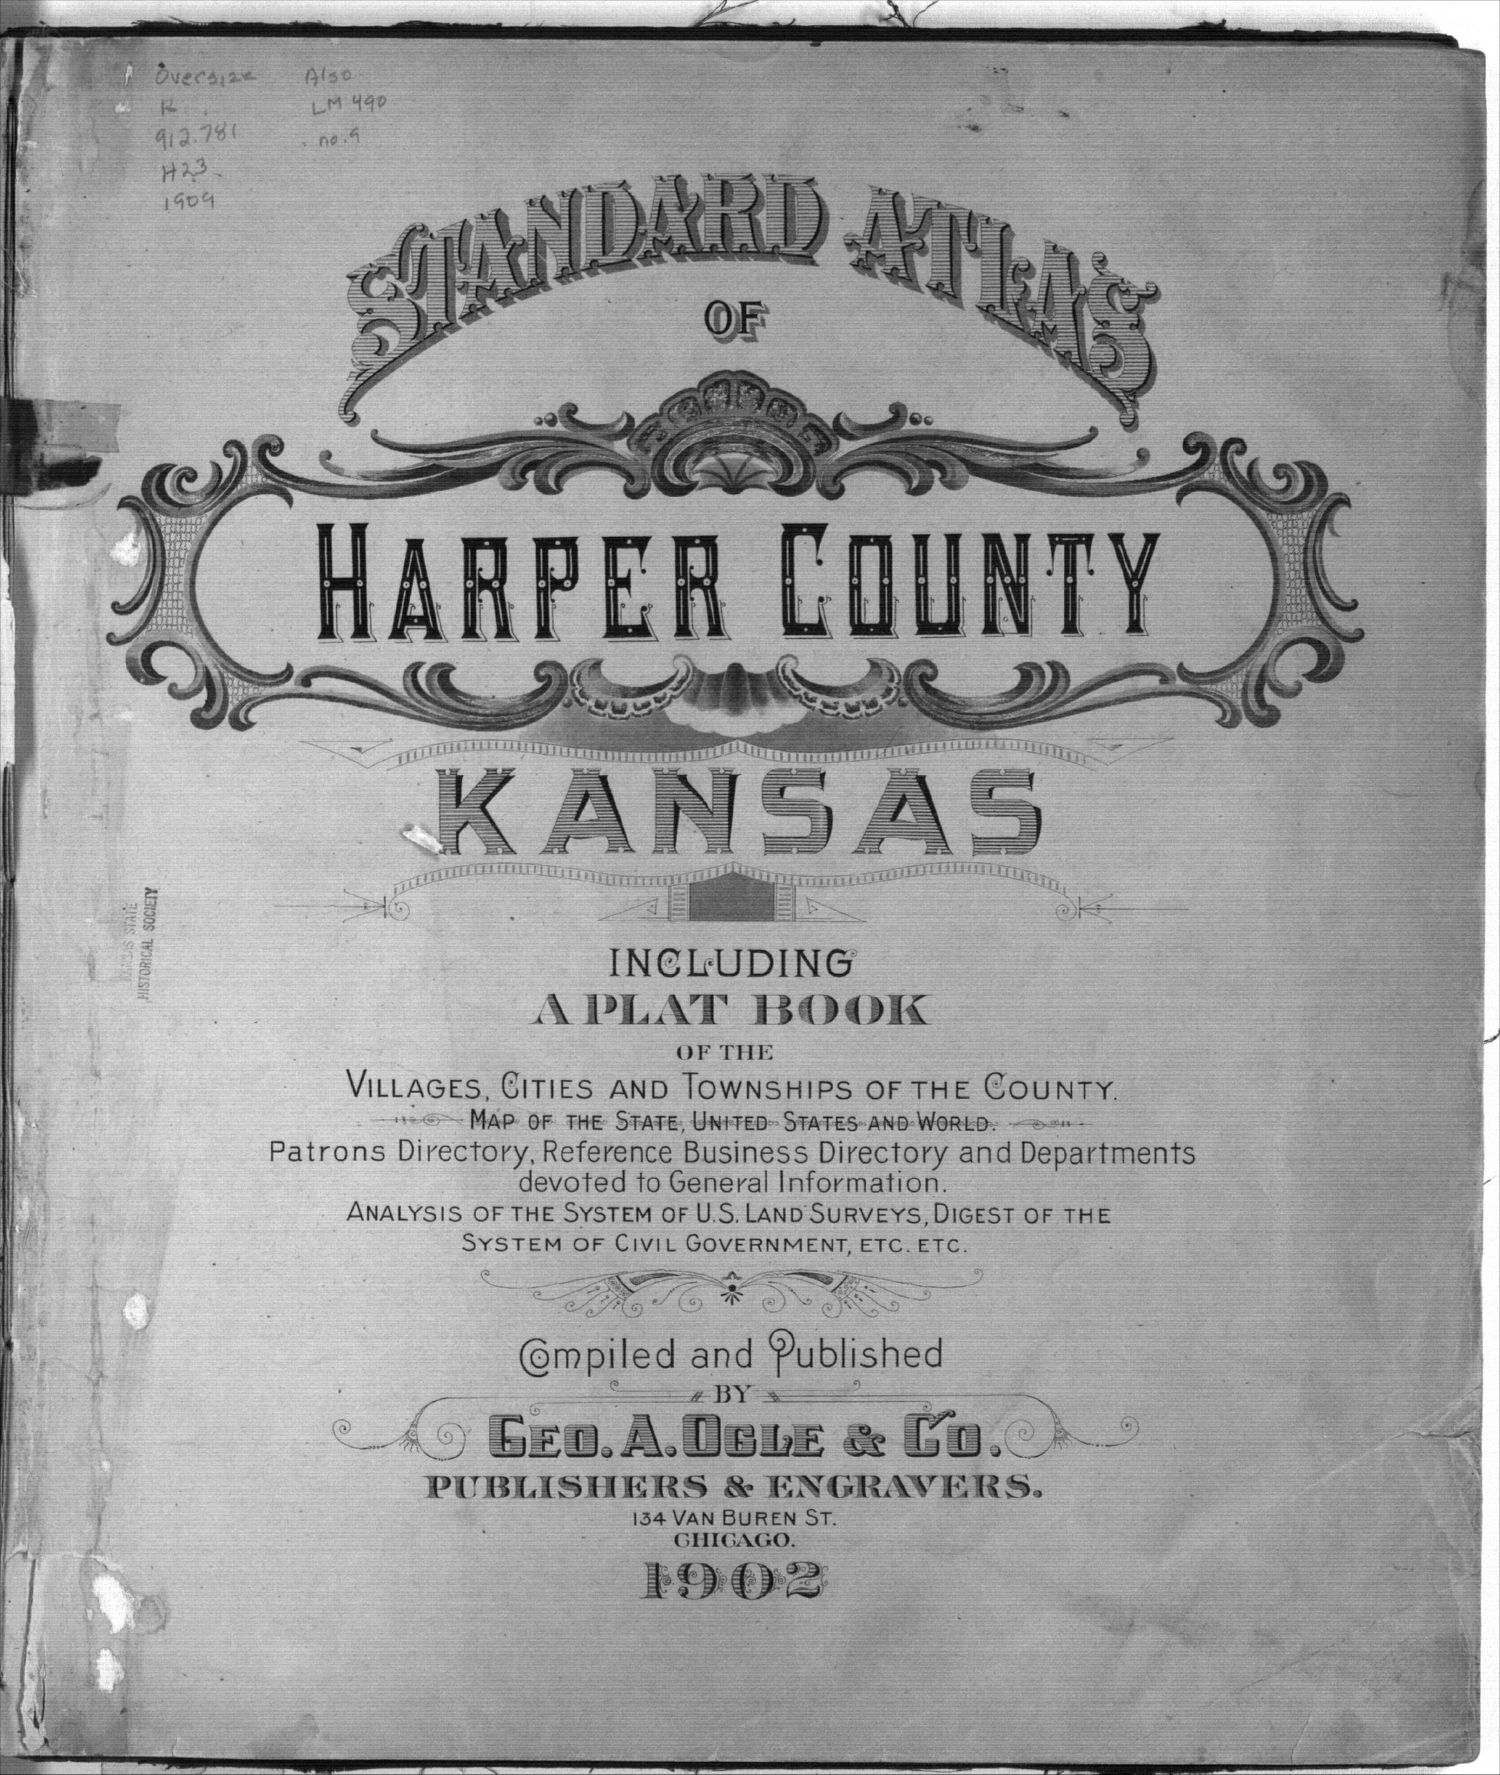 Standard atlas of Harper County, Kansas - Title Page